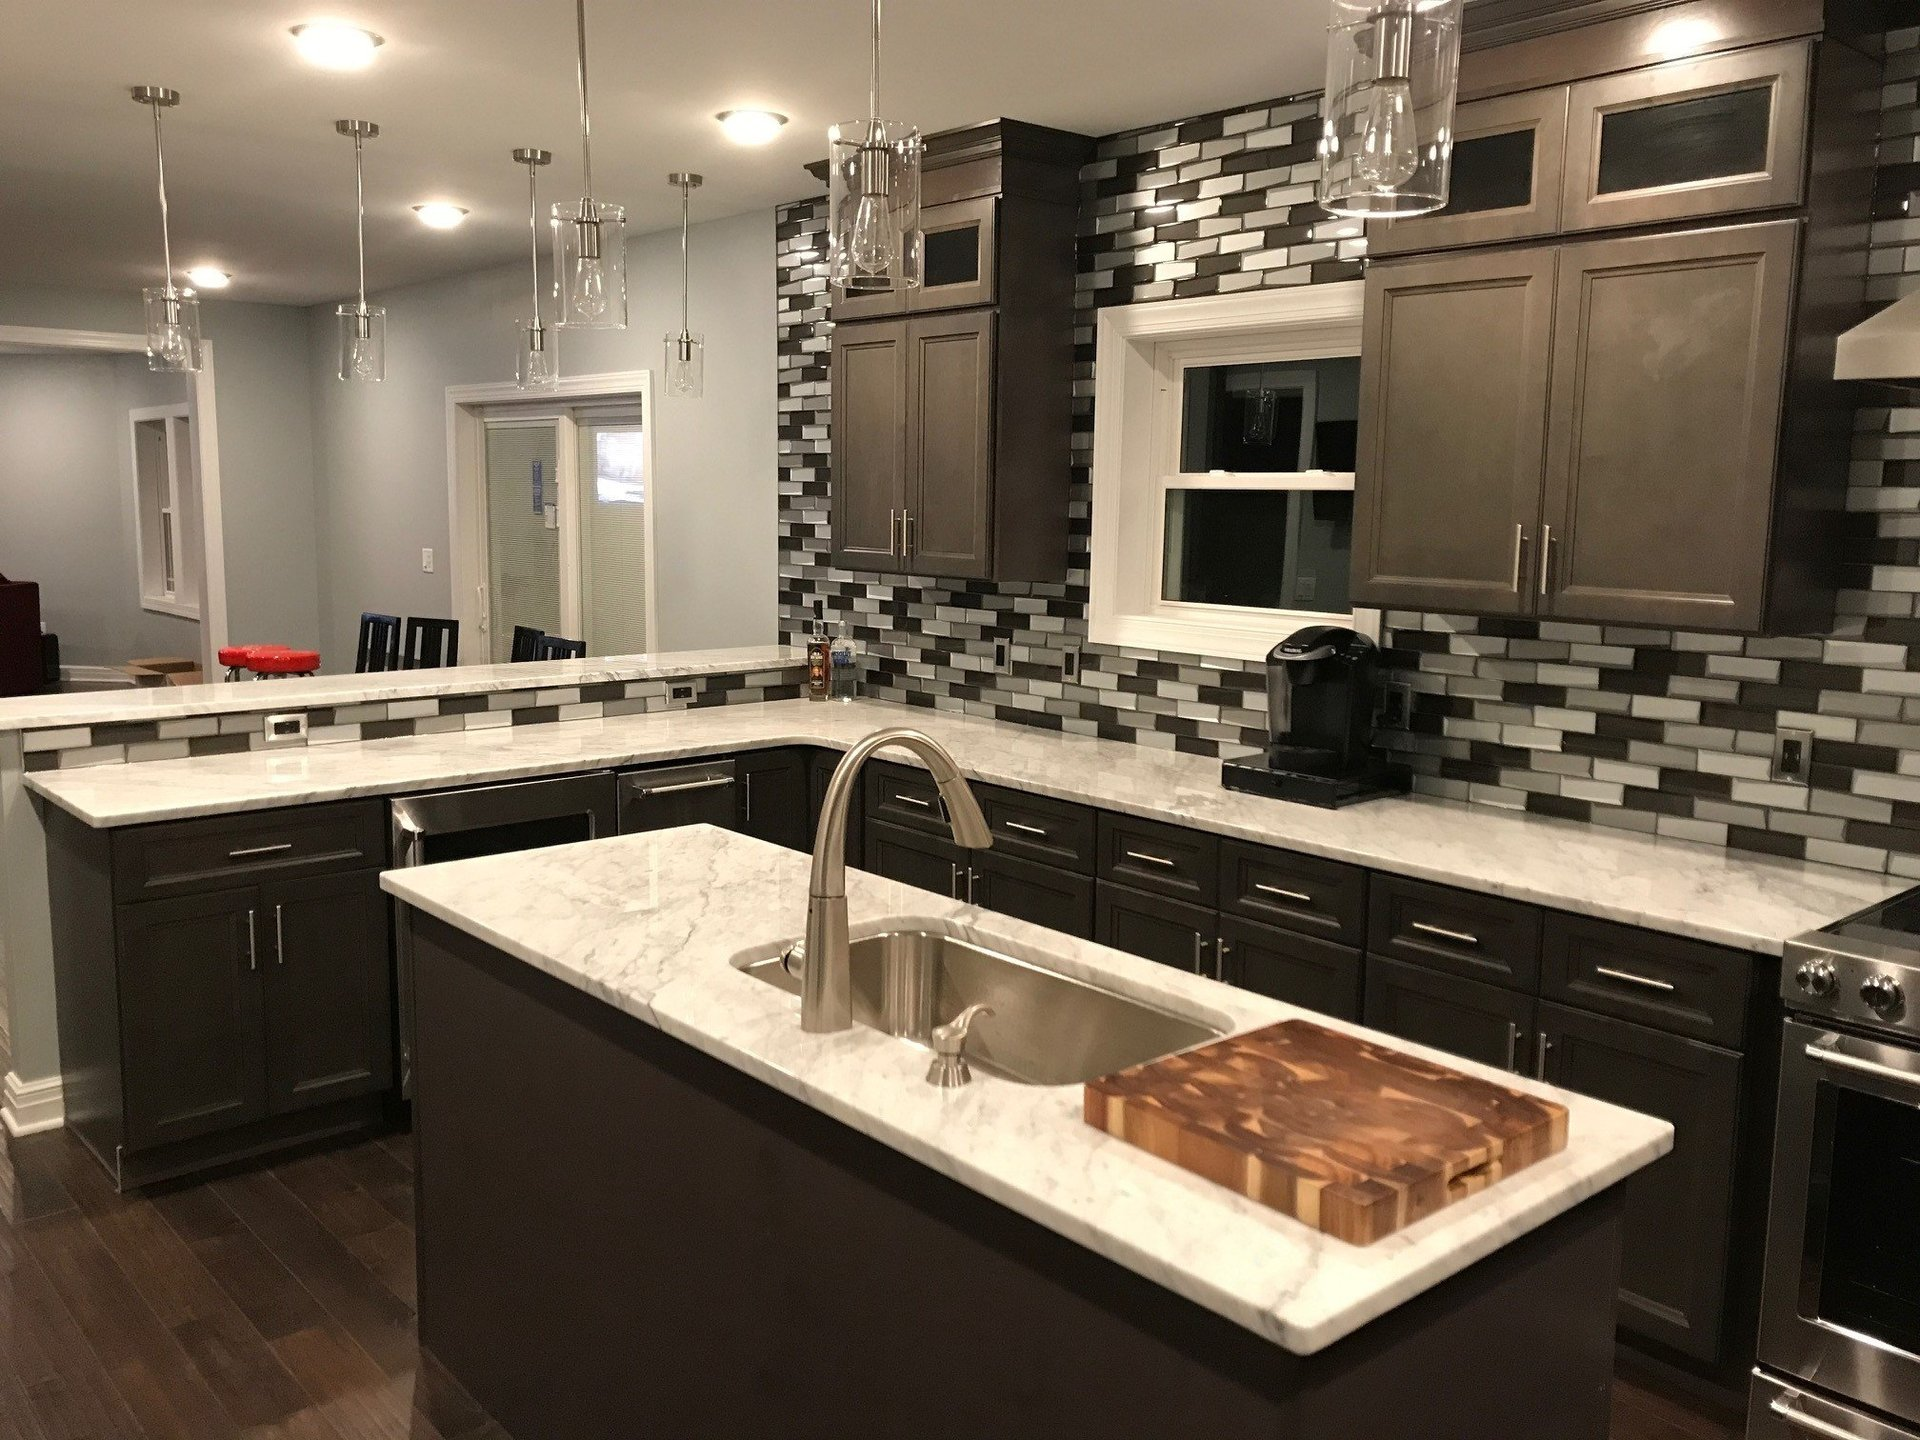 contact countertops diy makedoanddiy pin marble look paper cheap with done com easy super counters